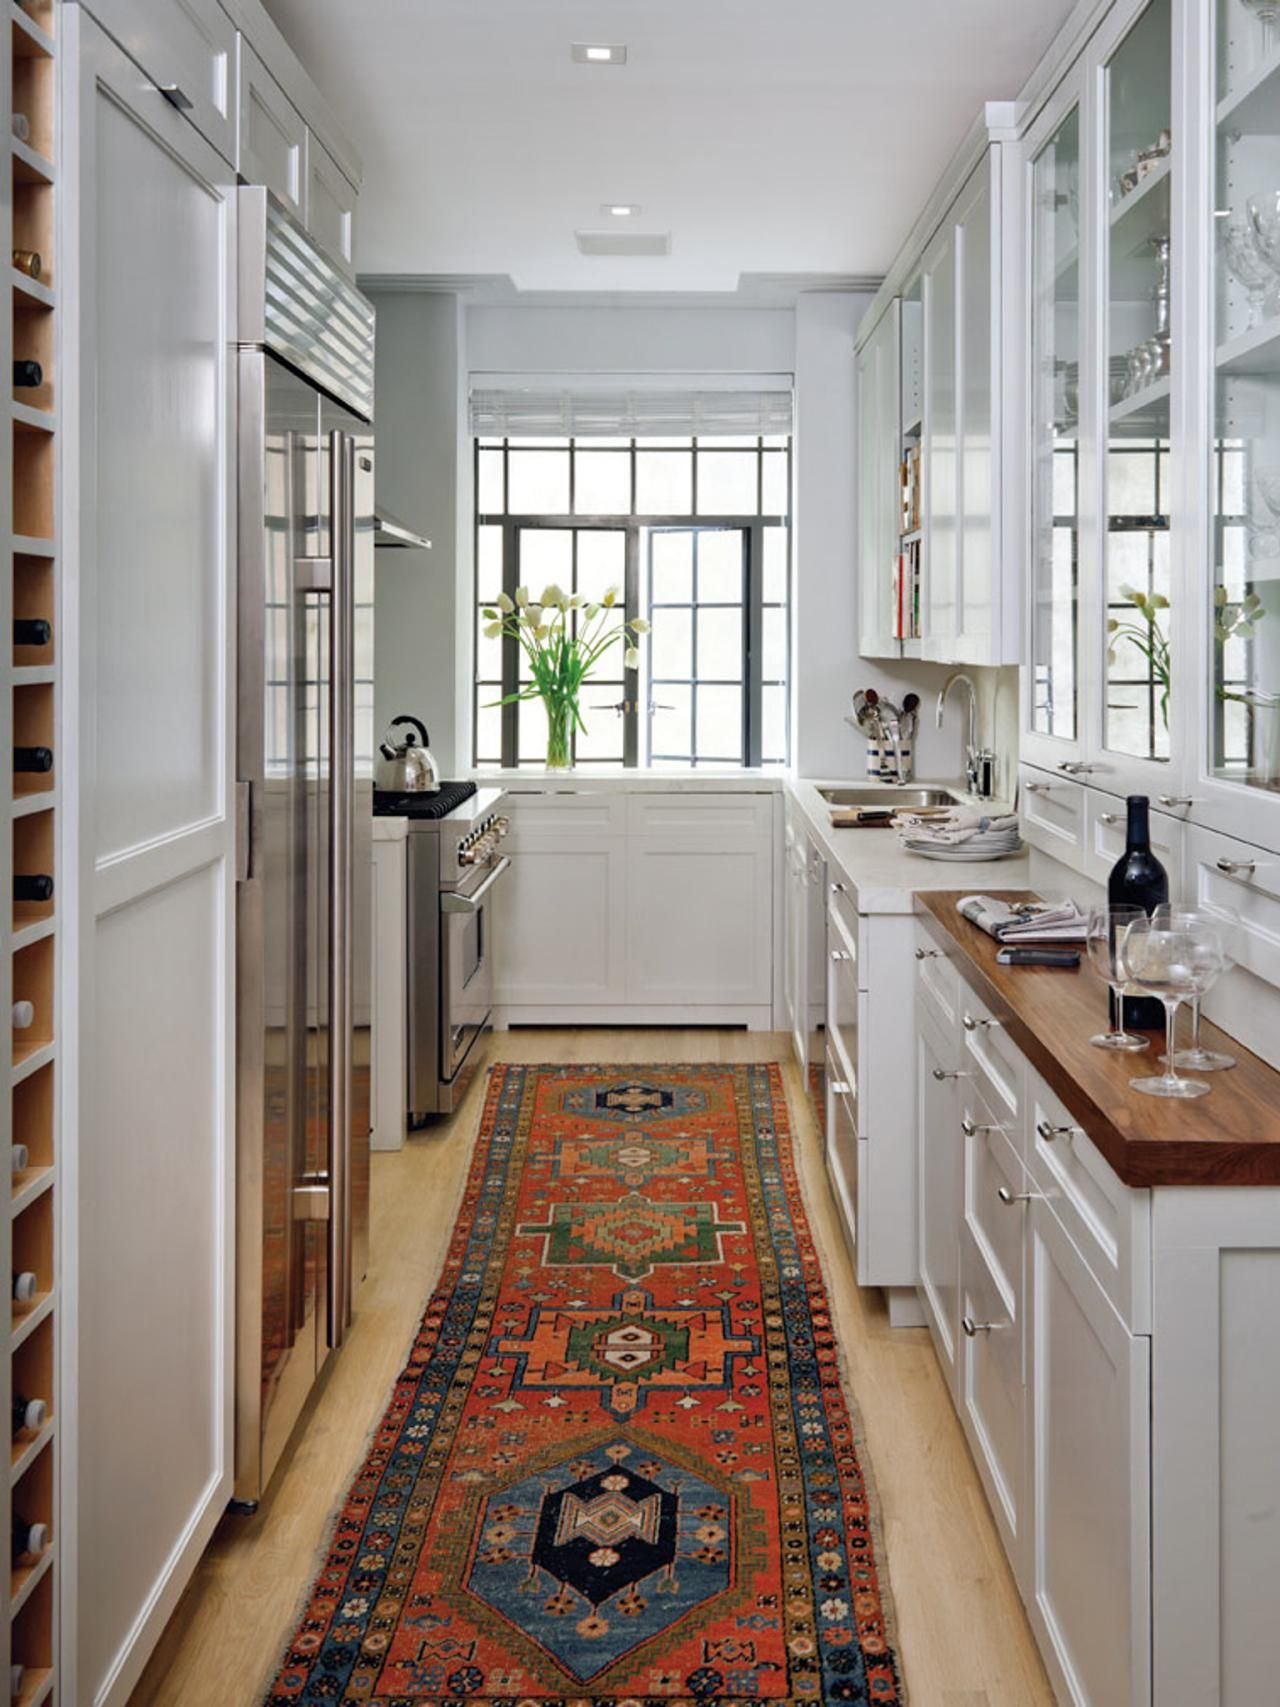 hgtvs favorite trends to try in 2015 interior design styles and color schemes for home